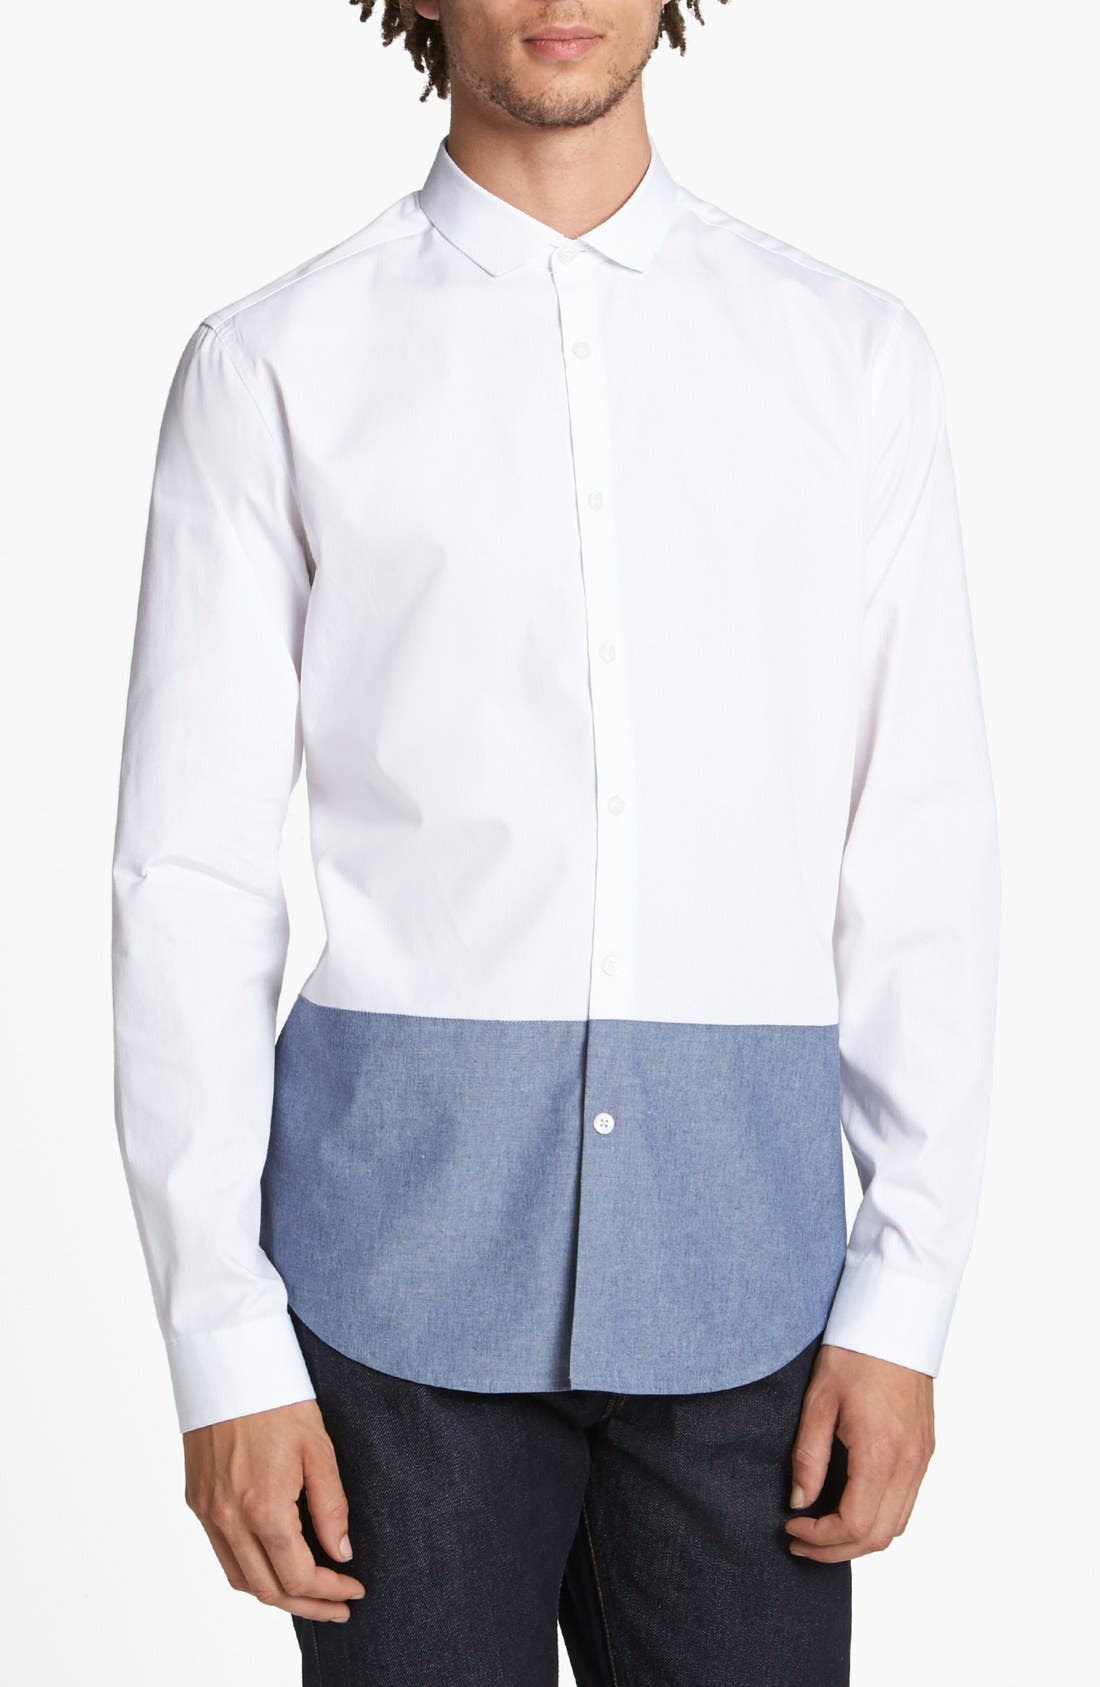 Main Image - Topman 'Smart' Slim Fit Contrast Dress Shirt